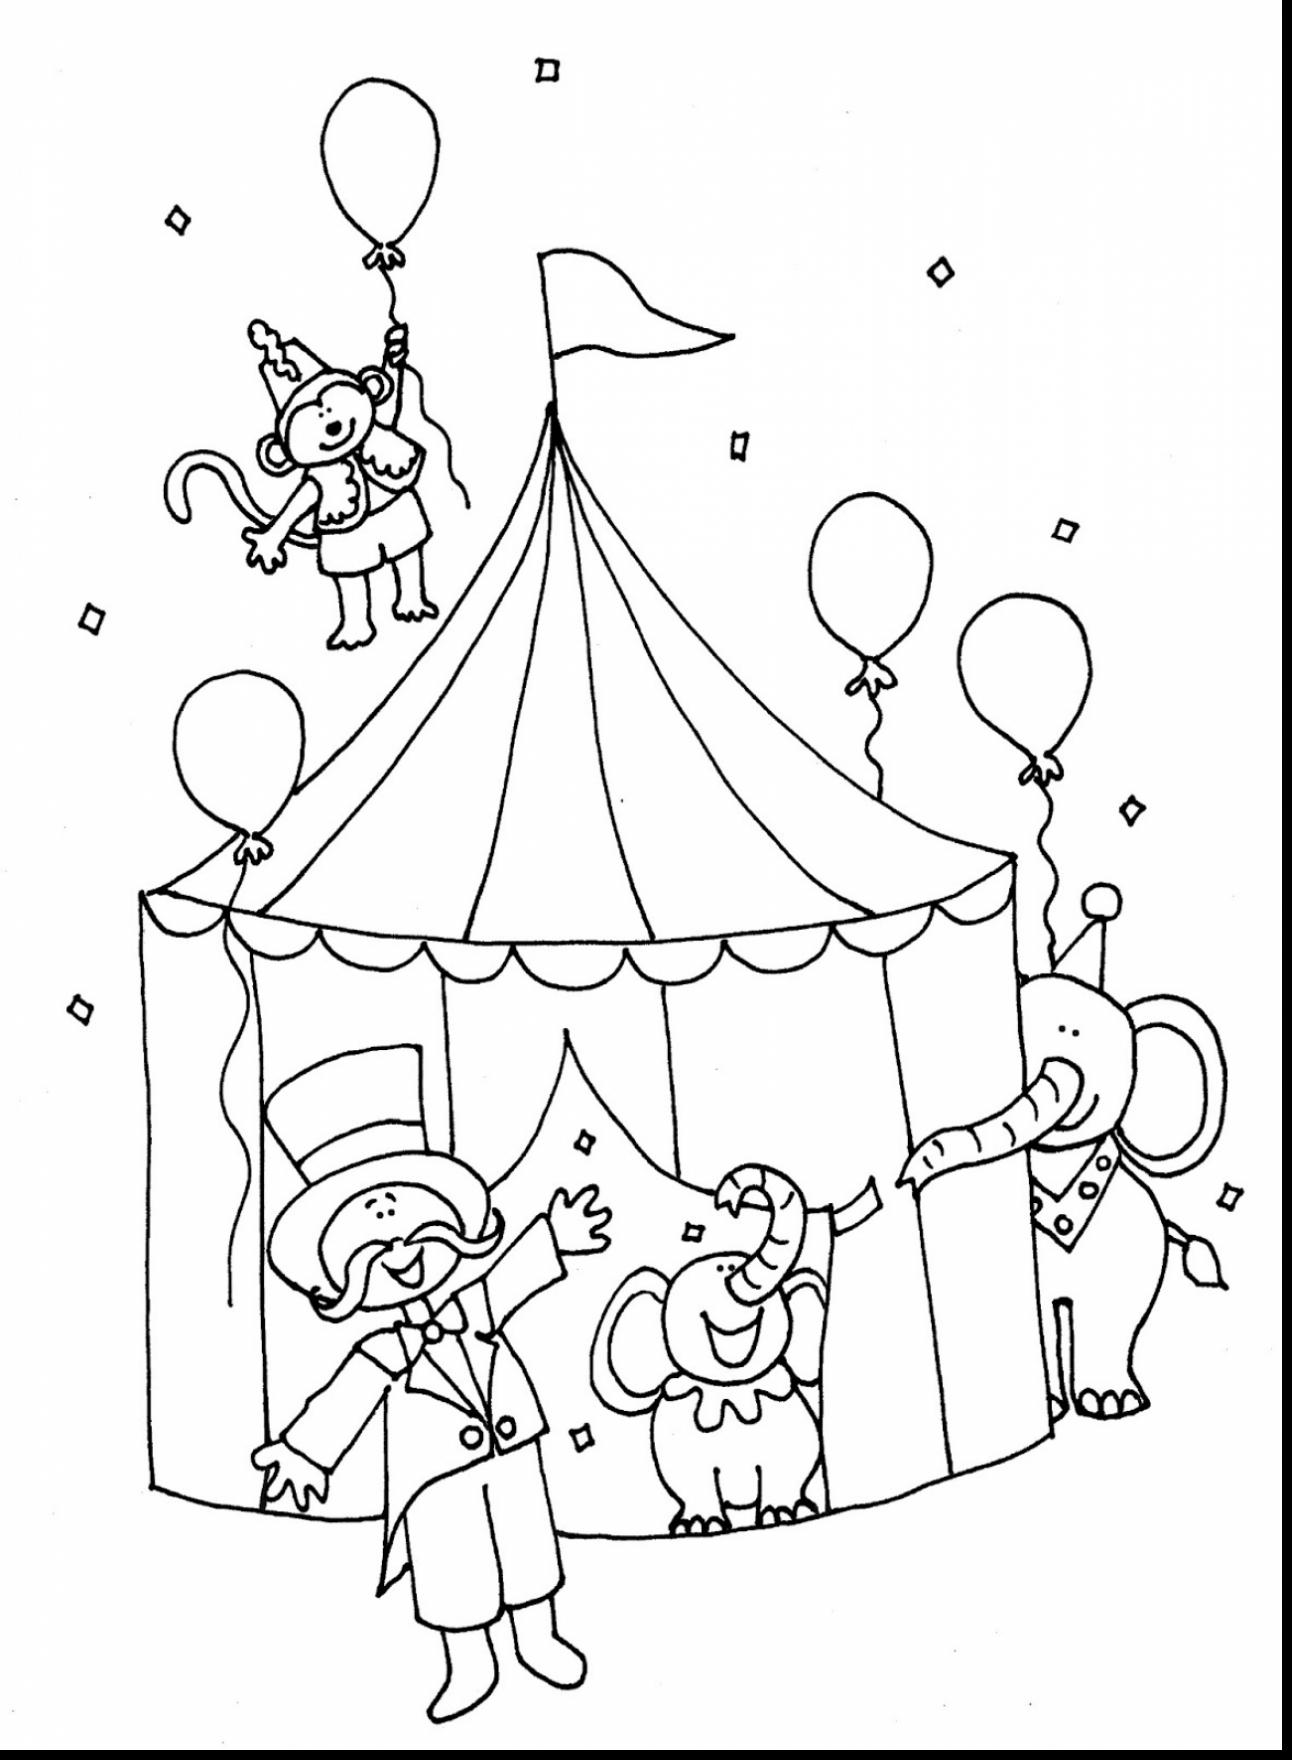 carnival clown coloring pages circus ringmaster drawing at getdrawings free download pages clown carnival coloring